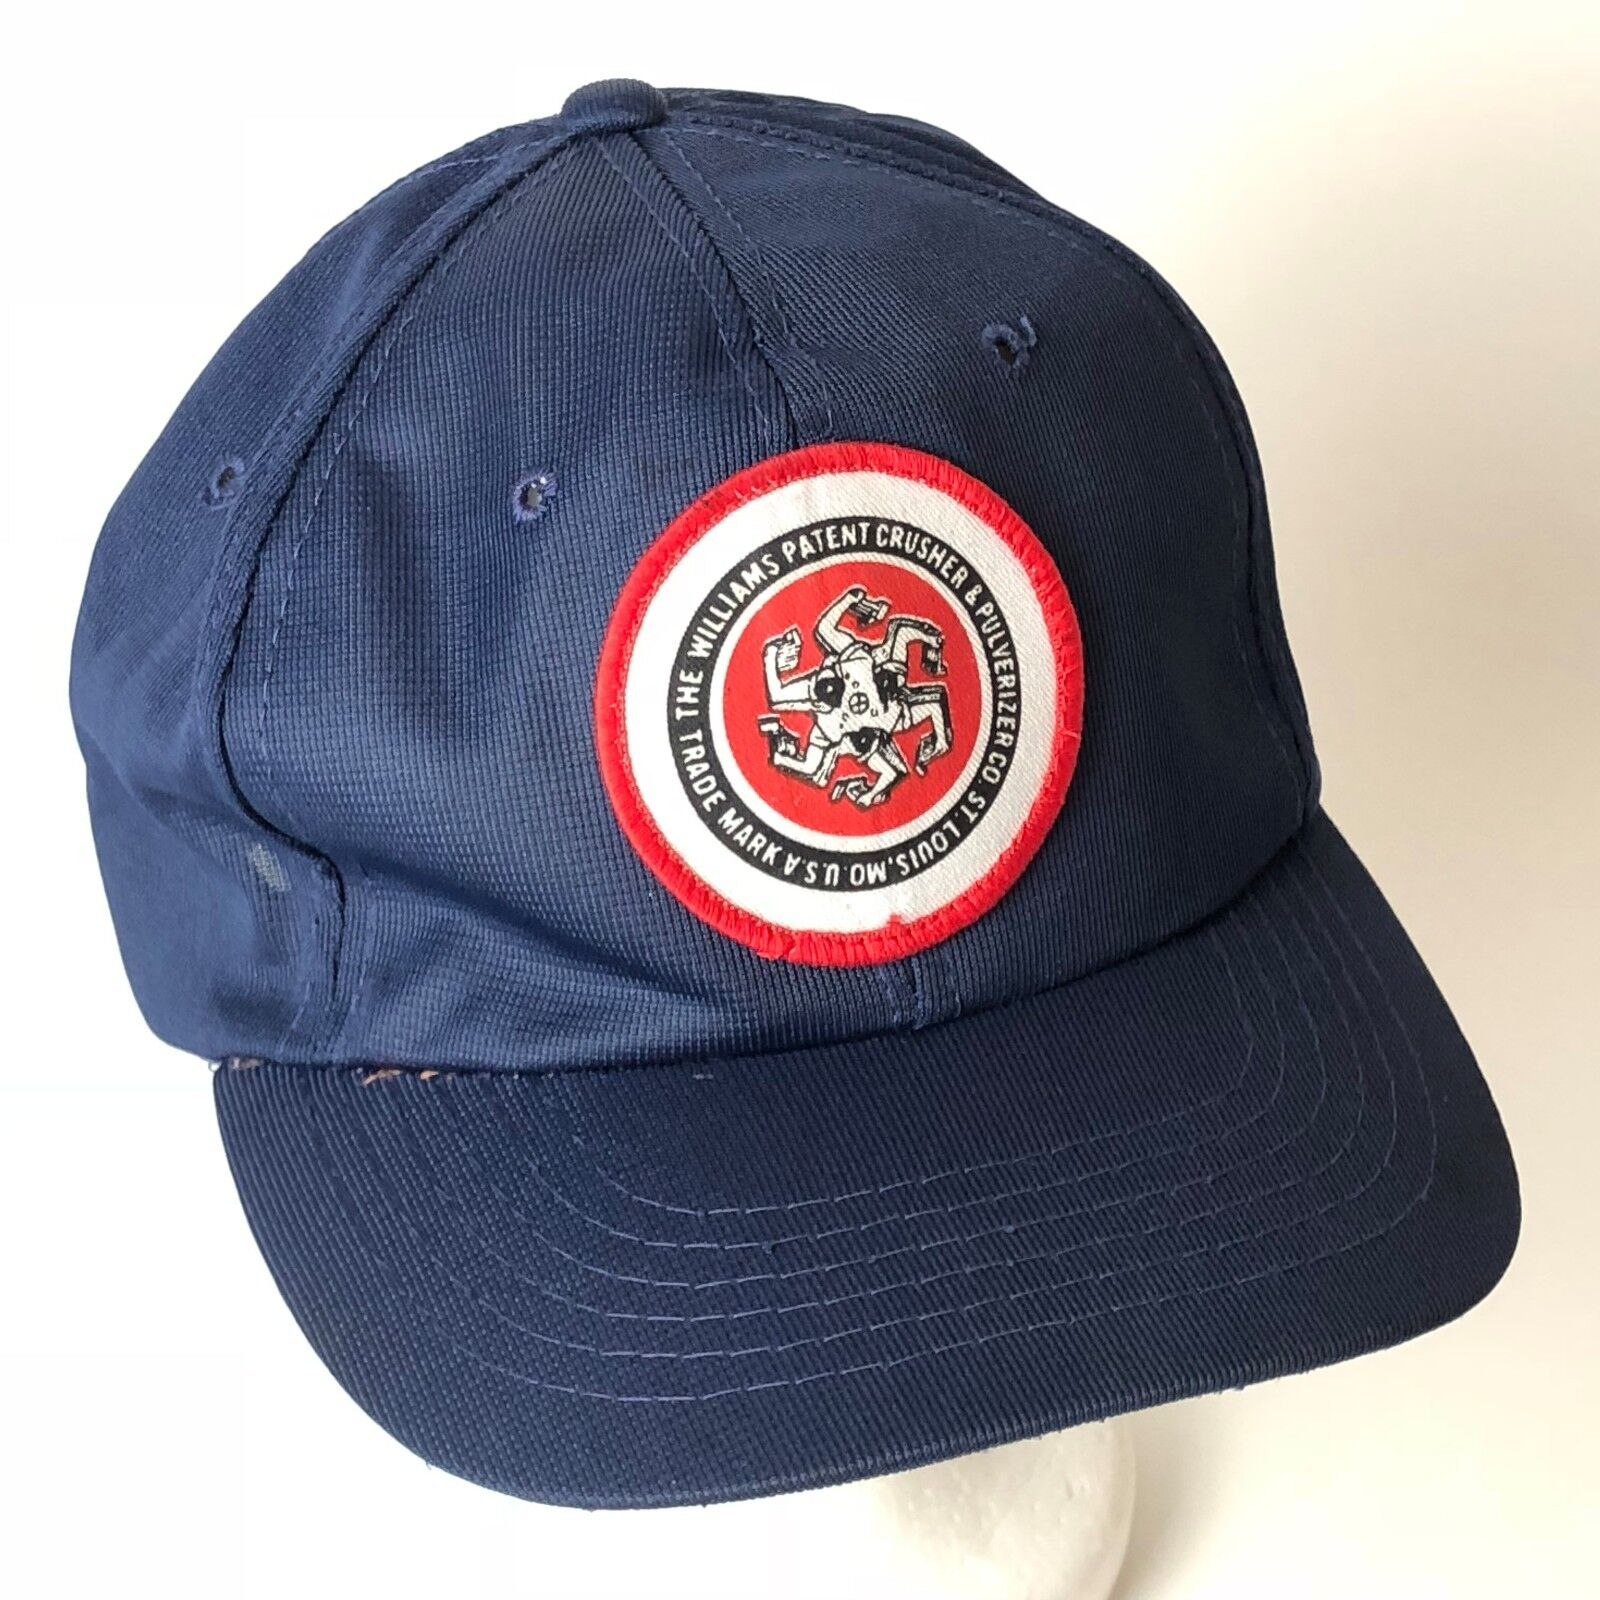 brand new 4365a 88e71 ... new arrivals vintage snapback hat and cap williams patent crusher and  hat pulverizer co men blue